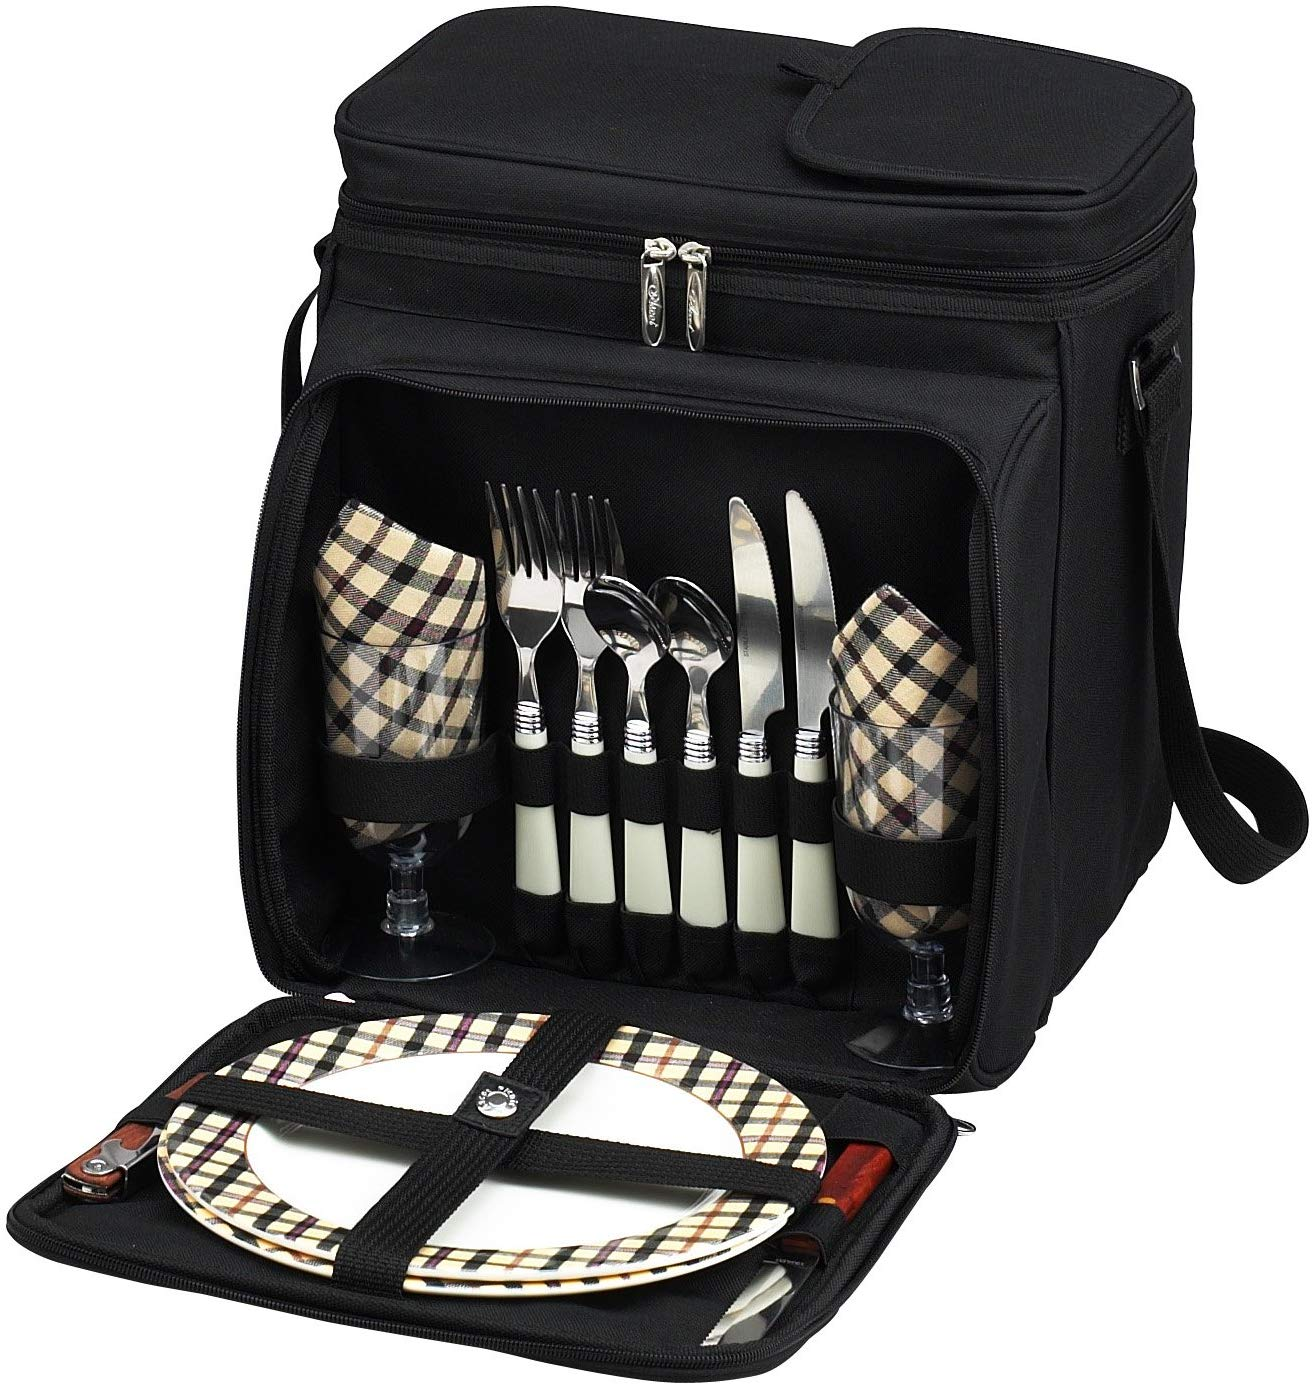 Picnic at Ascot Original Insulated Picnic Basket